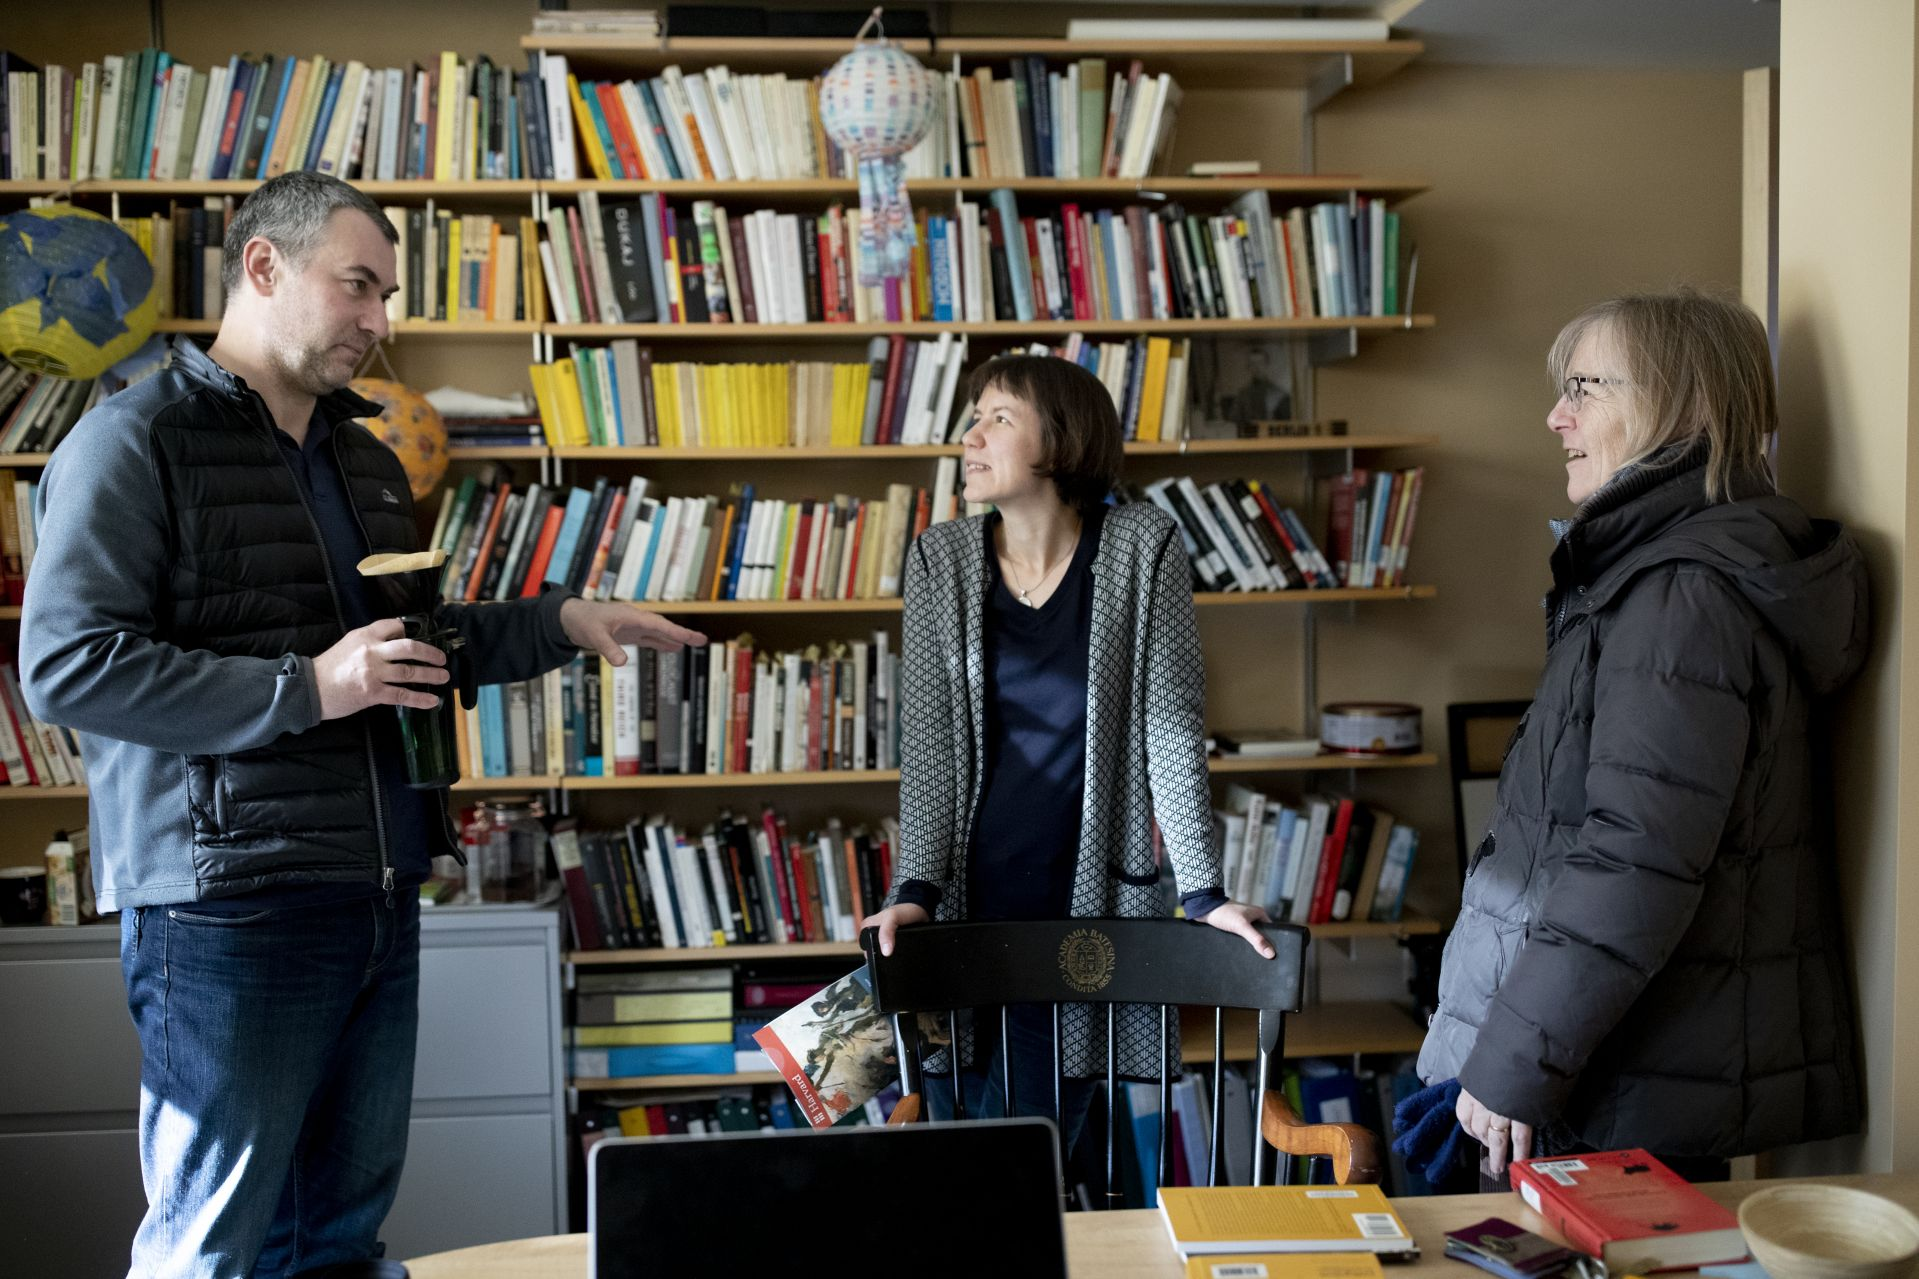 Costlow visits with Associate Professor of German Jakub Kazecki and Associate Professor of German Raluca Czernahoschi in Kazecki's Chase Hall office. (Phyllis Graber Jensen/Bates College)